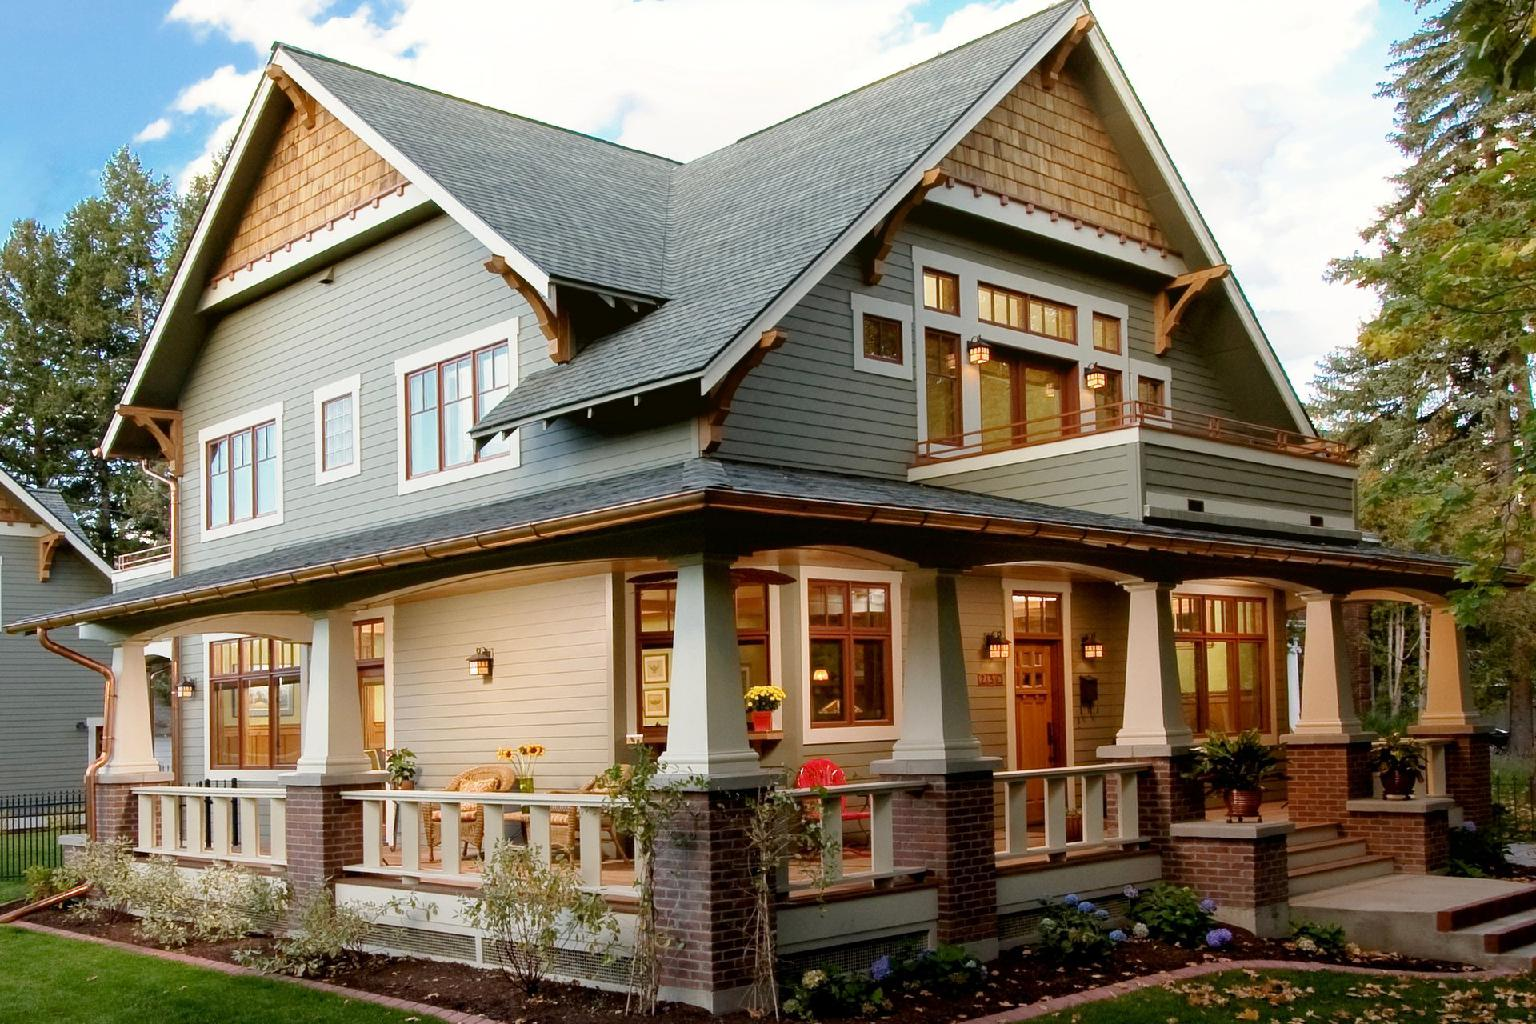 Craftsman Style House: History, Characteristics, and Ideas